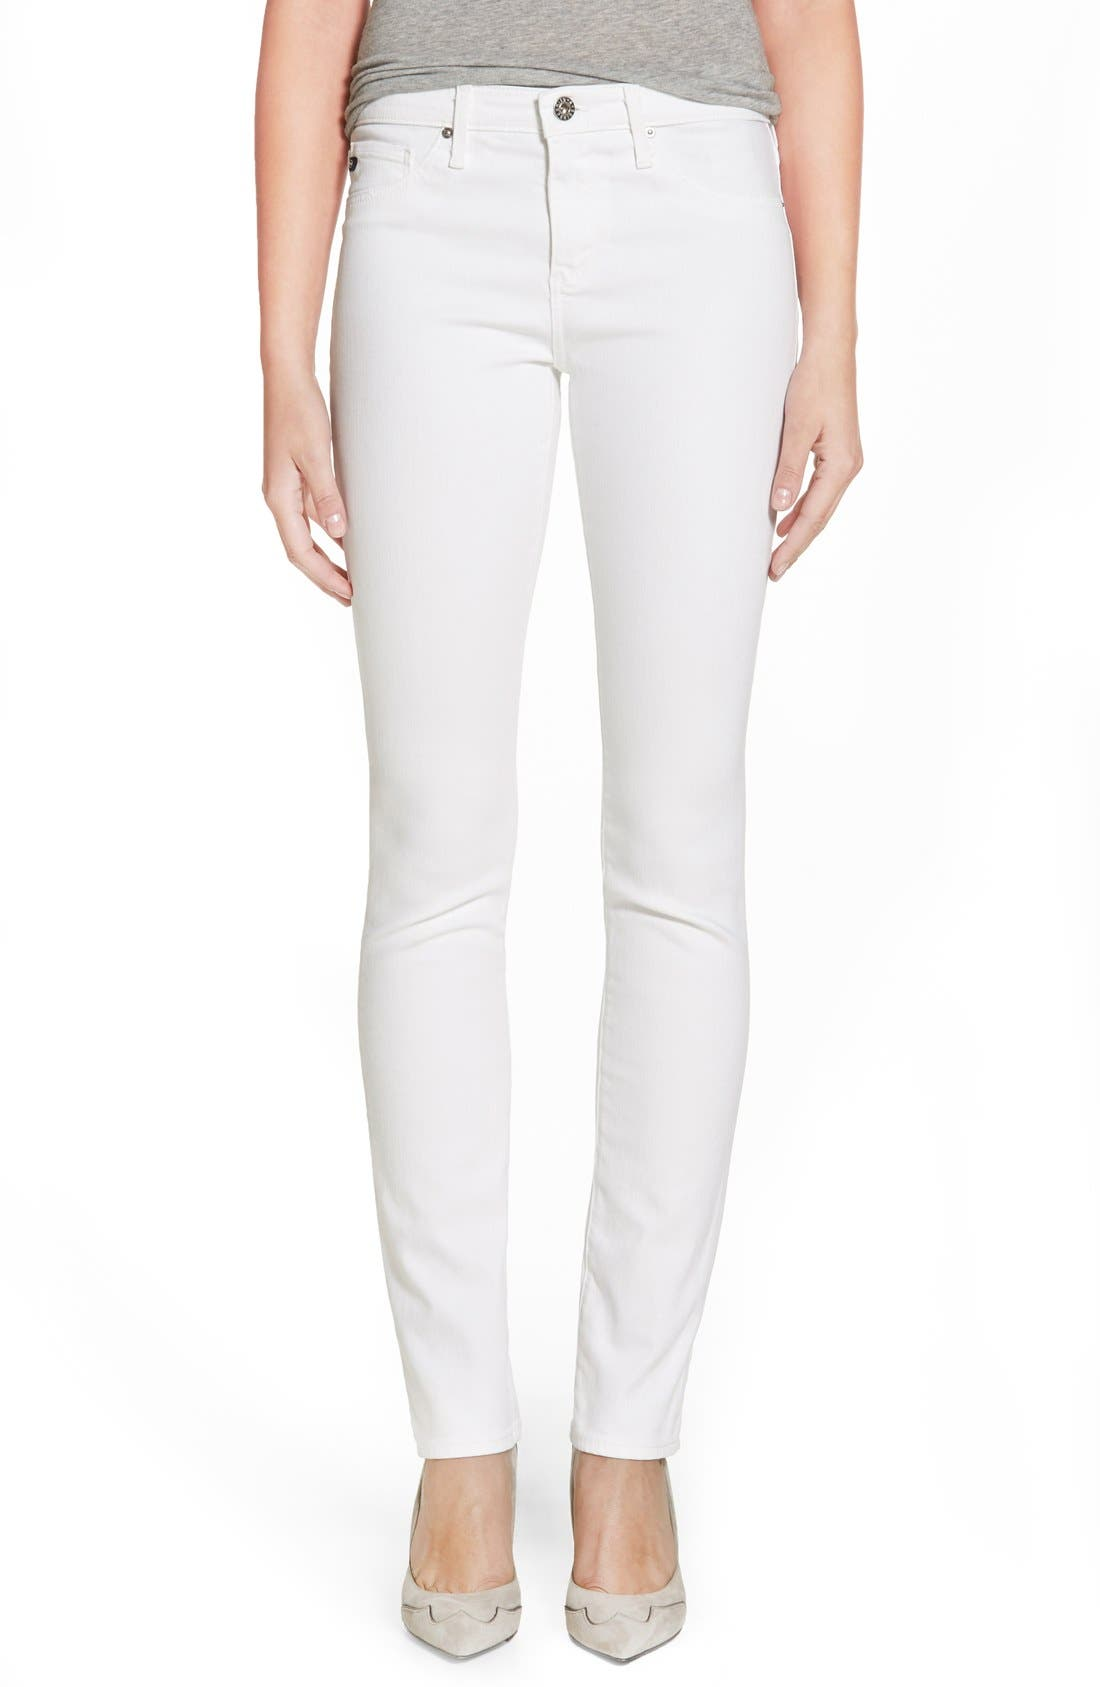 AG 'Harper' Slim Straight Leg Jeans, Main, color, WHITE